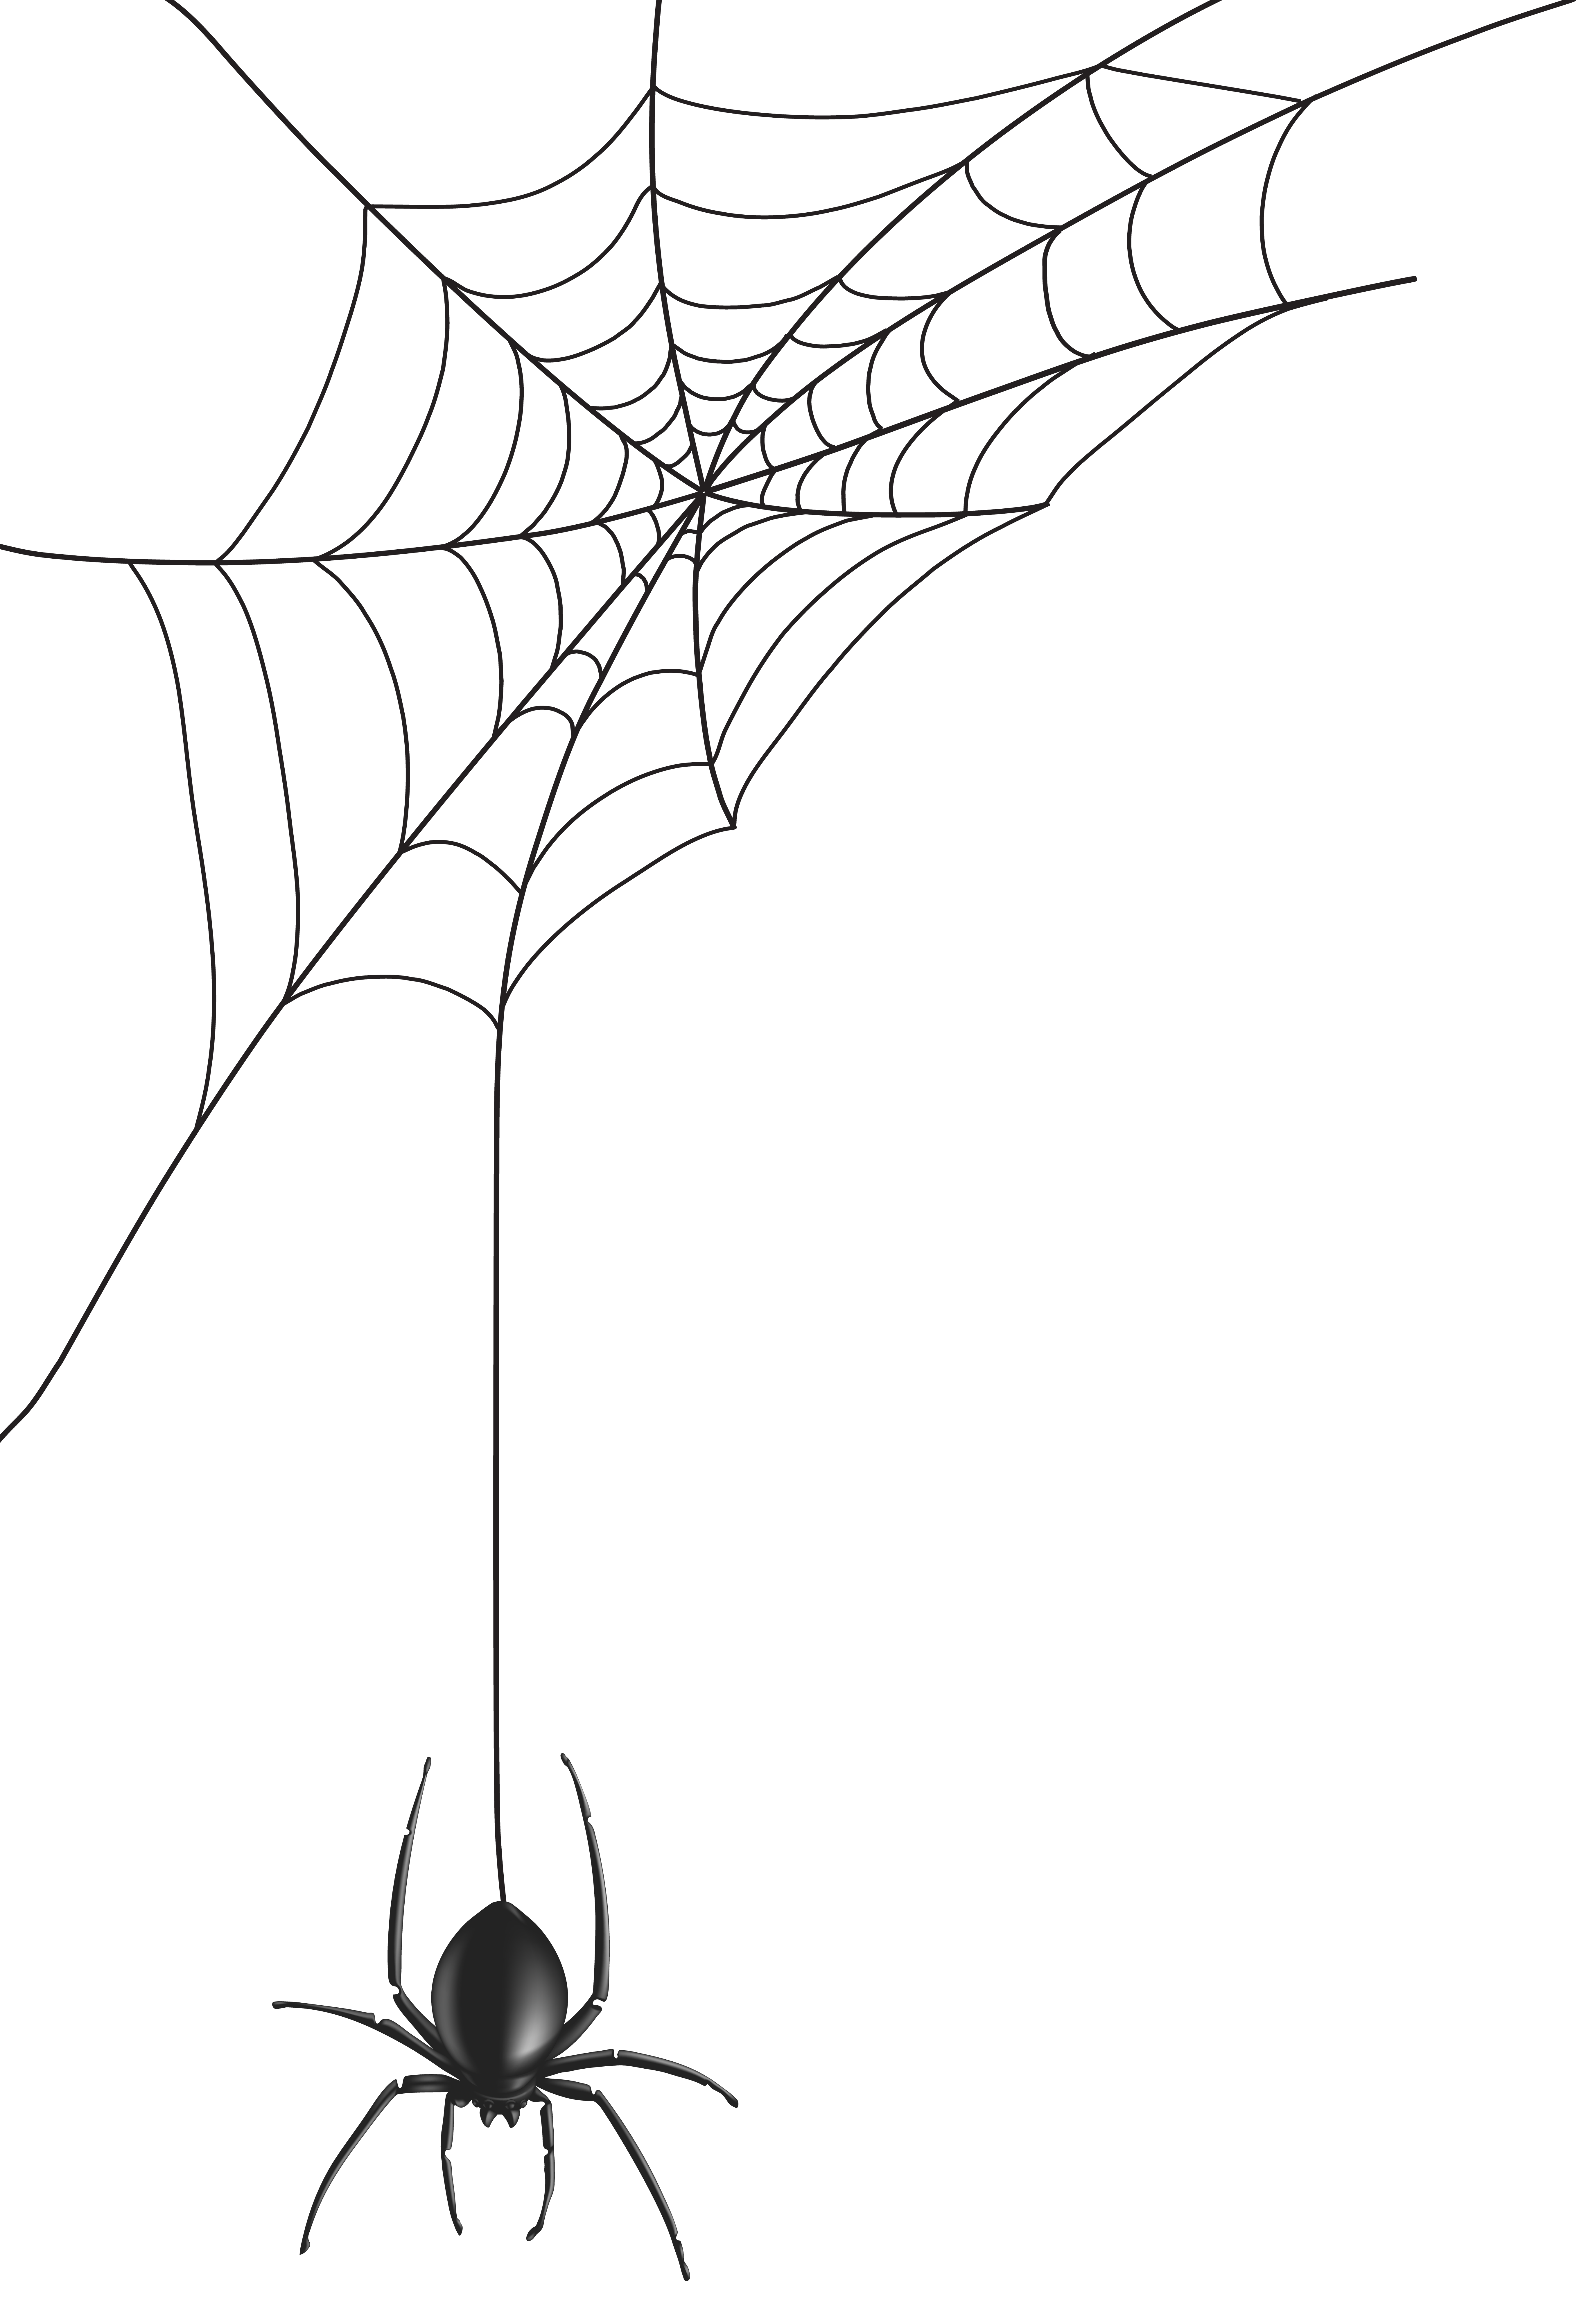 Halloween png spider web